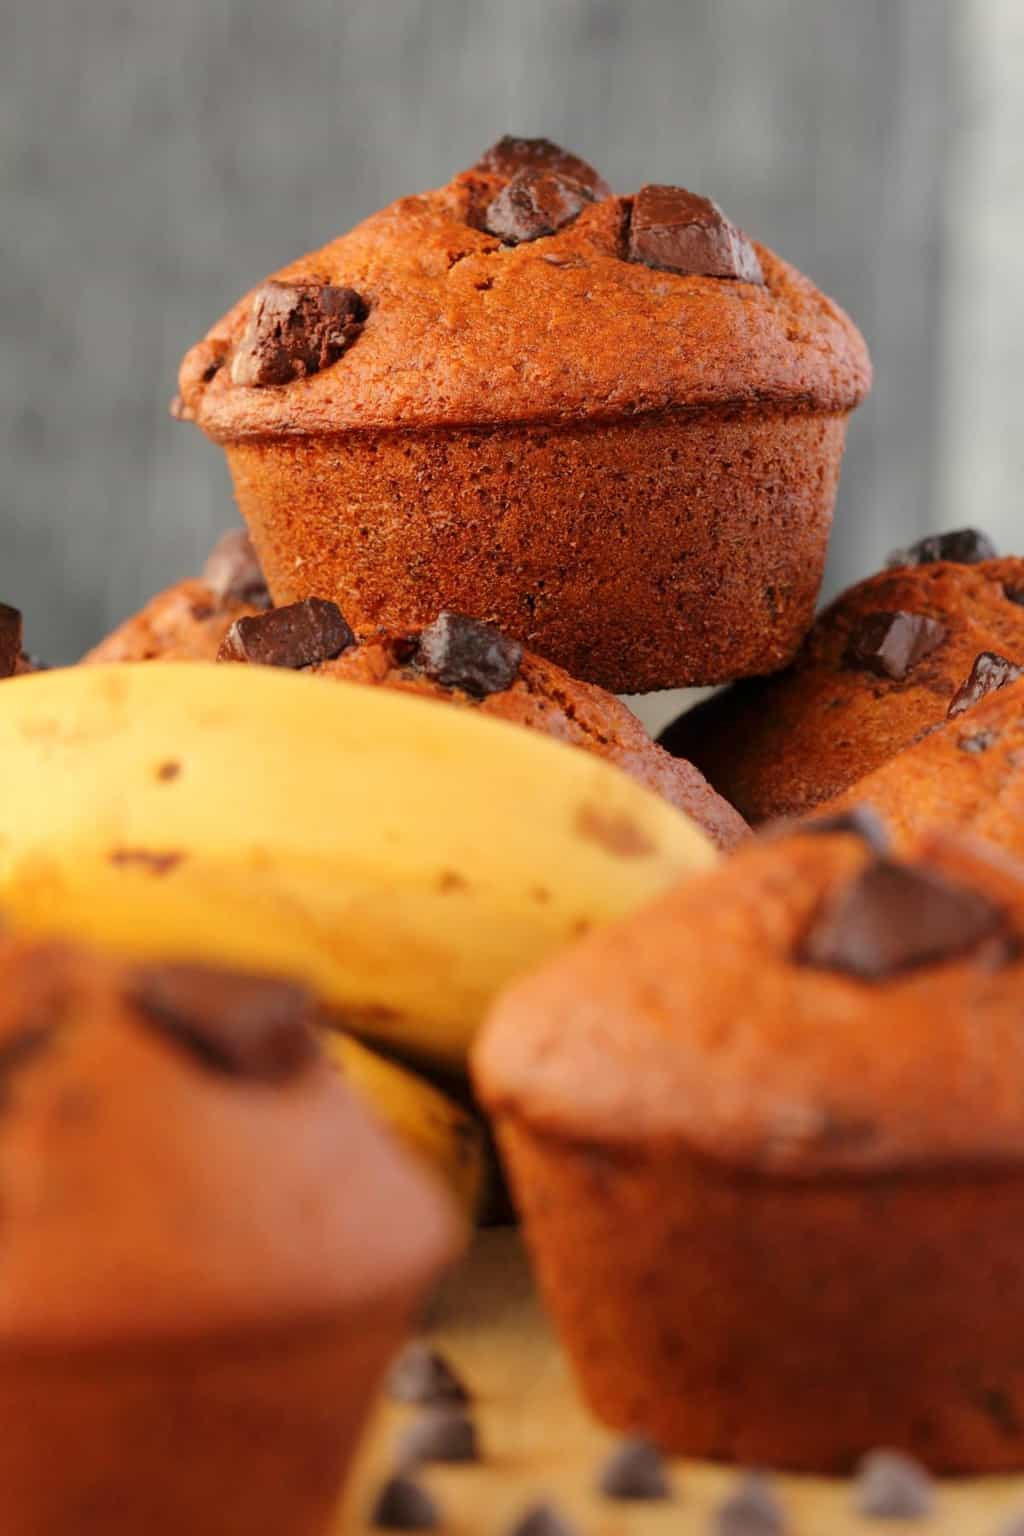 Vegan banana chocolate chip muffins on a wooden board with bananas and chocolate chips.